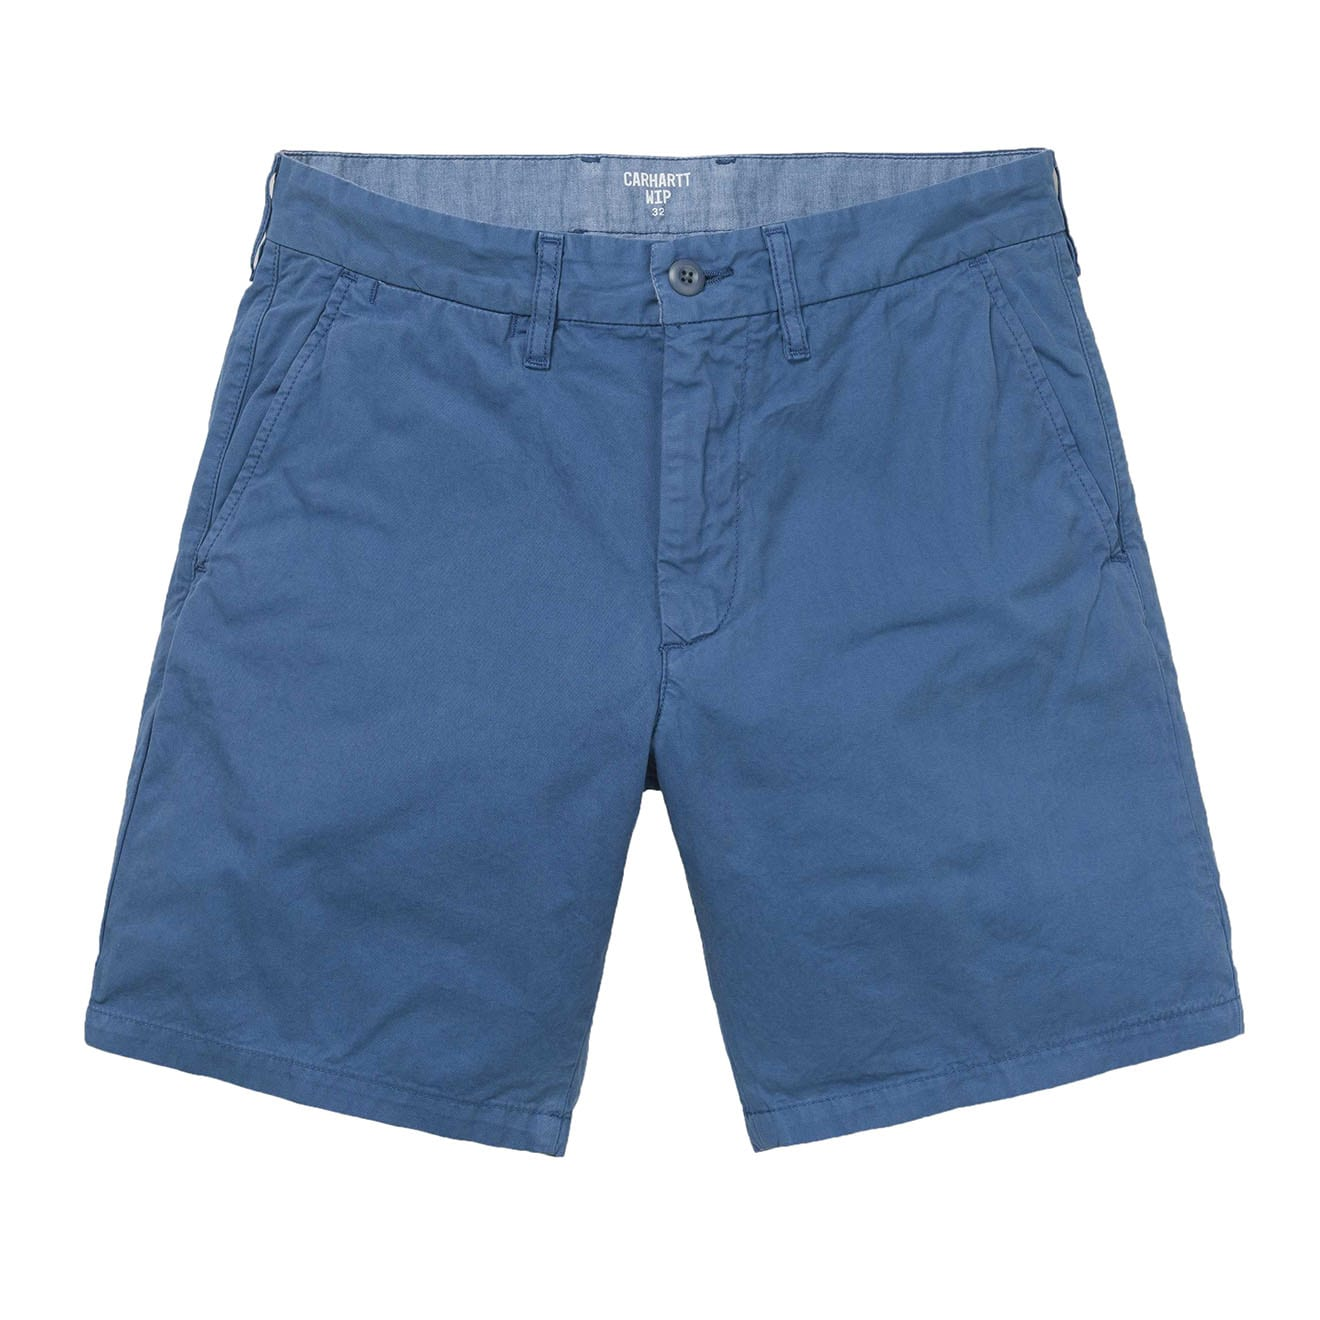 Carhartt John Shorts 100% Cotton